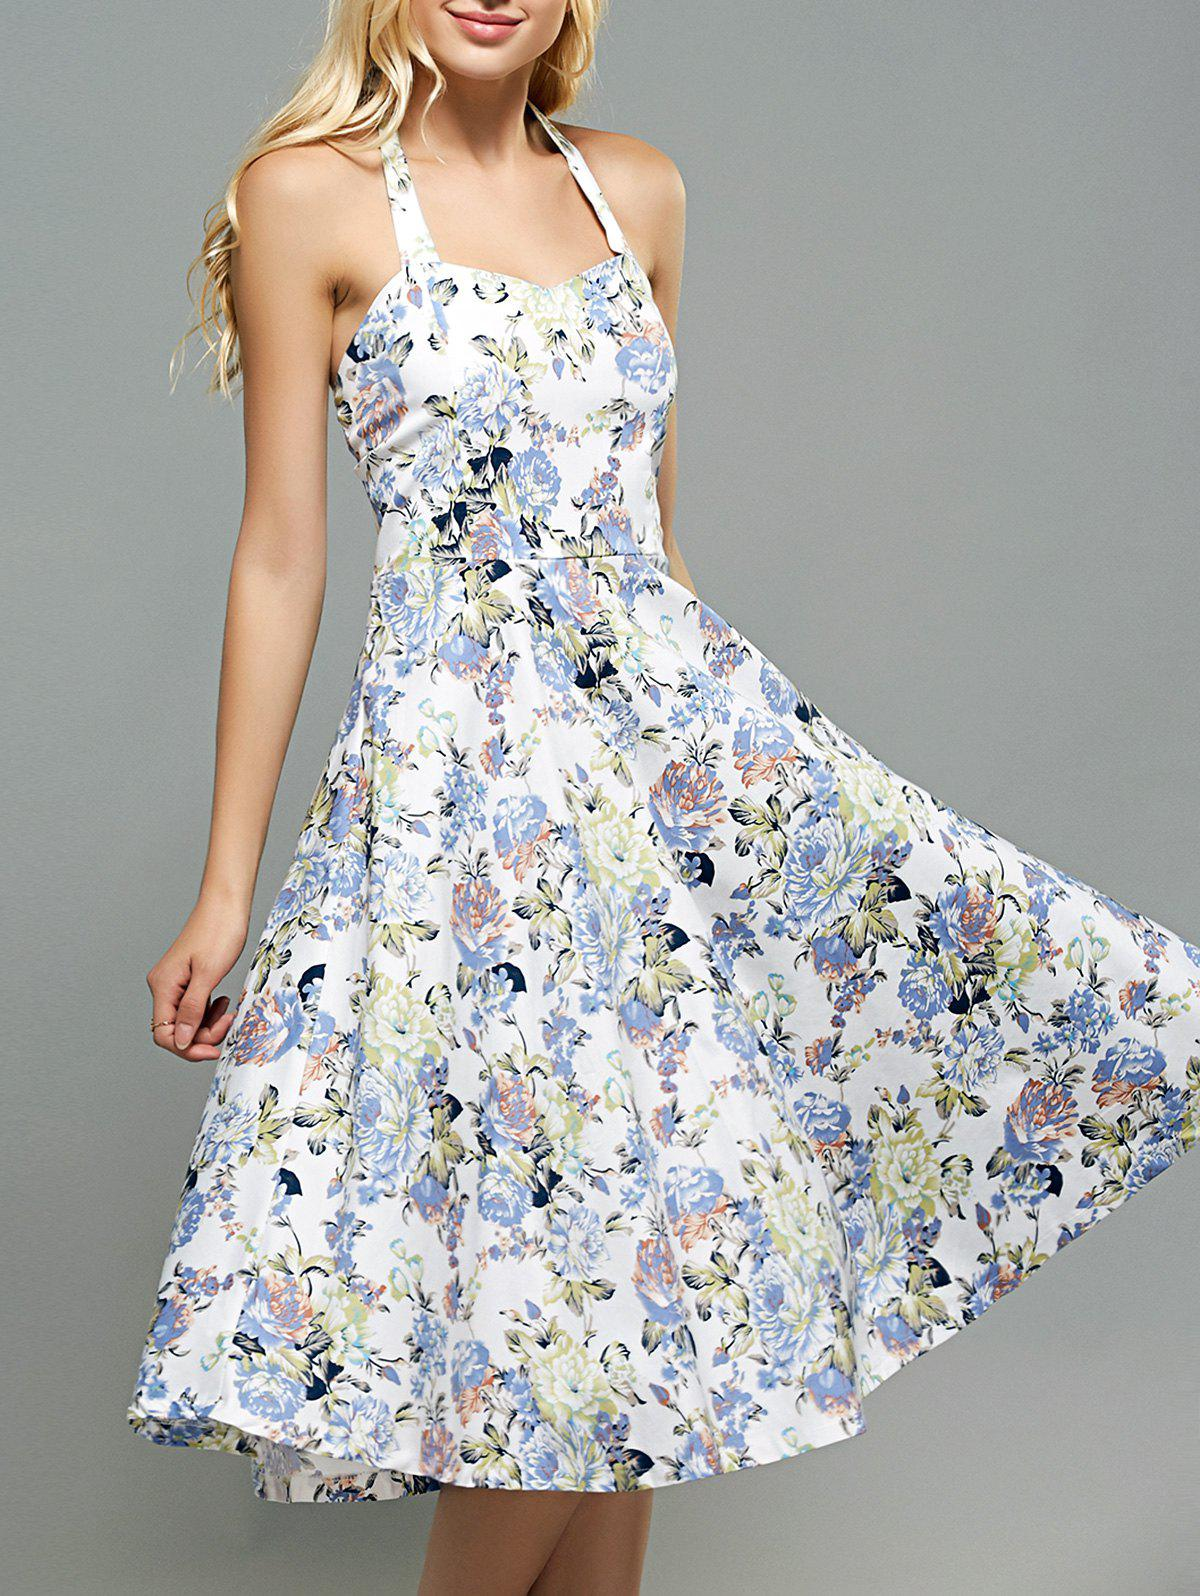 High-Waisted Halter Floral Print Slimming Dress - WHITE 2XL